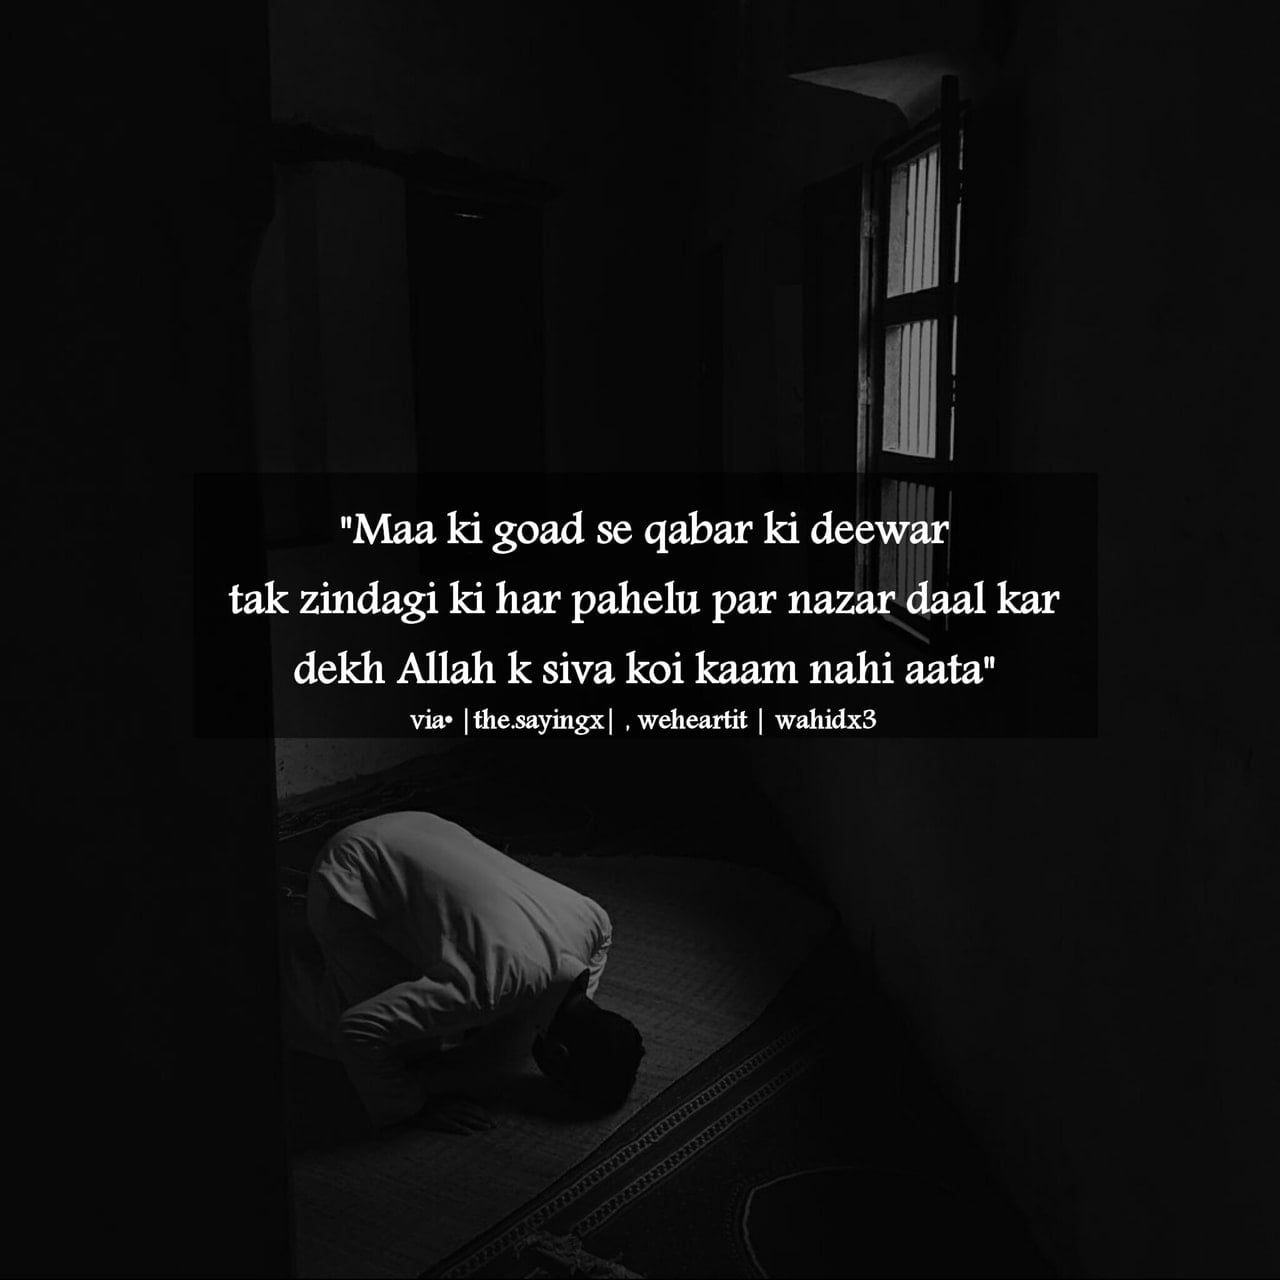 652 images about sad urdu poetry on we heart it see more about urdu poetry and quote